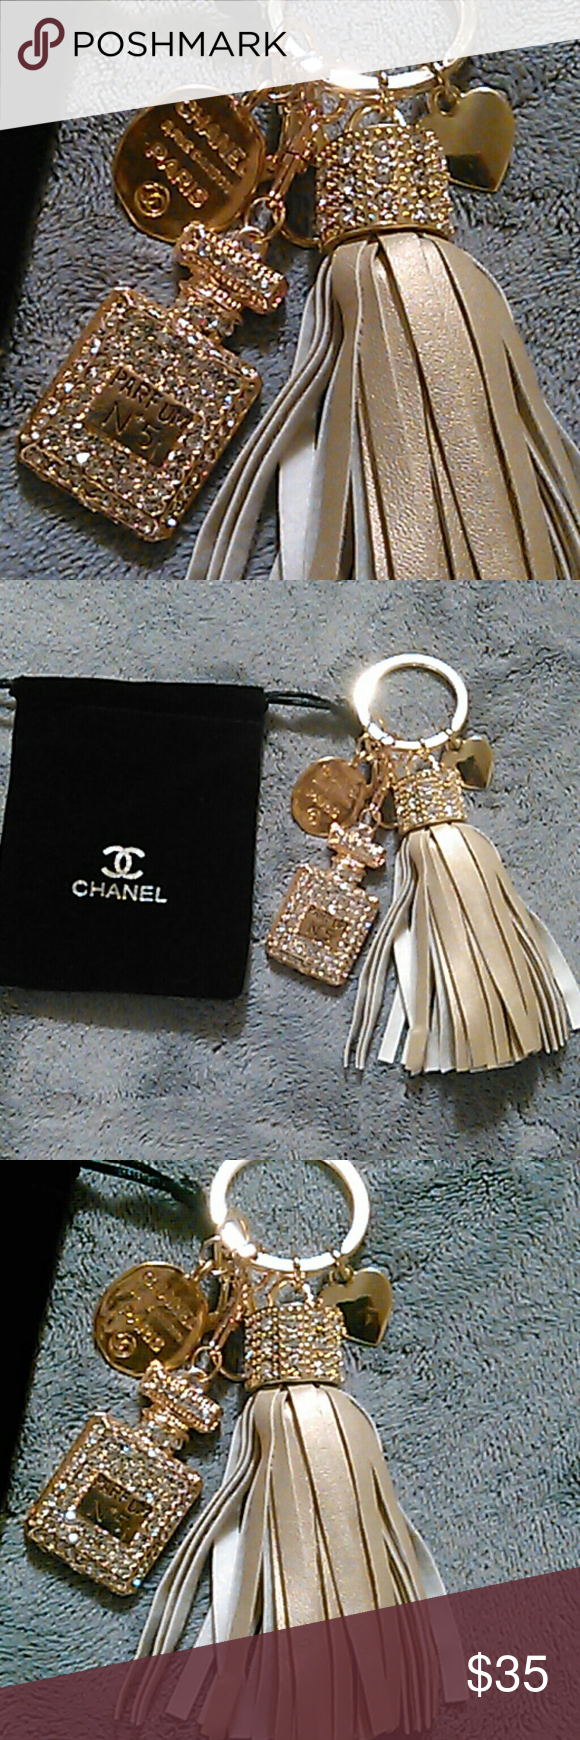 Beautiful Gold Keychain This keychain has 4 charms. Please view ALL photos. Accessories Key & Card Holders